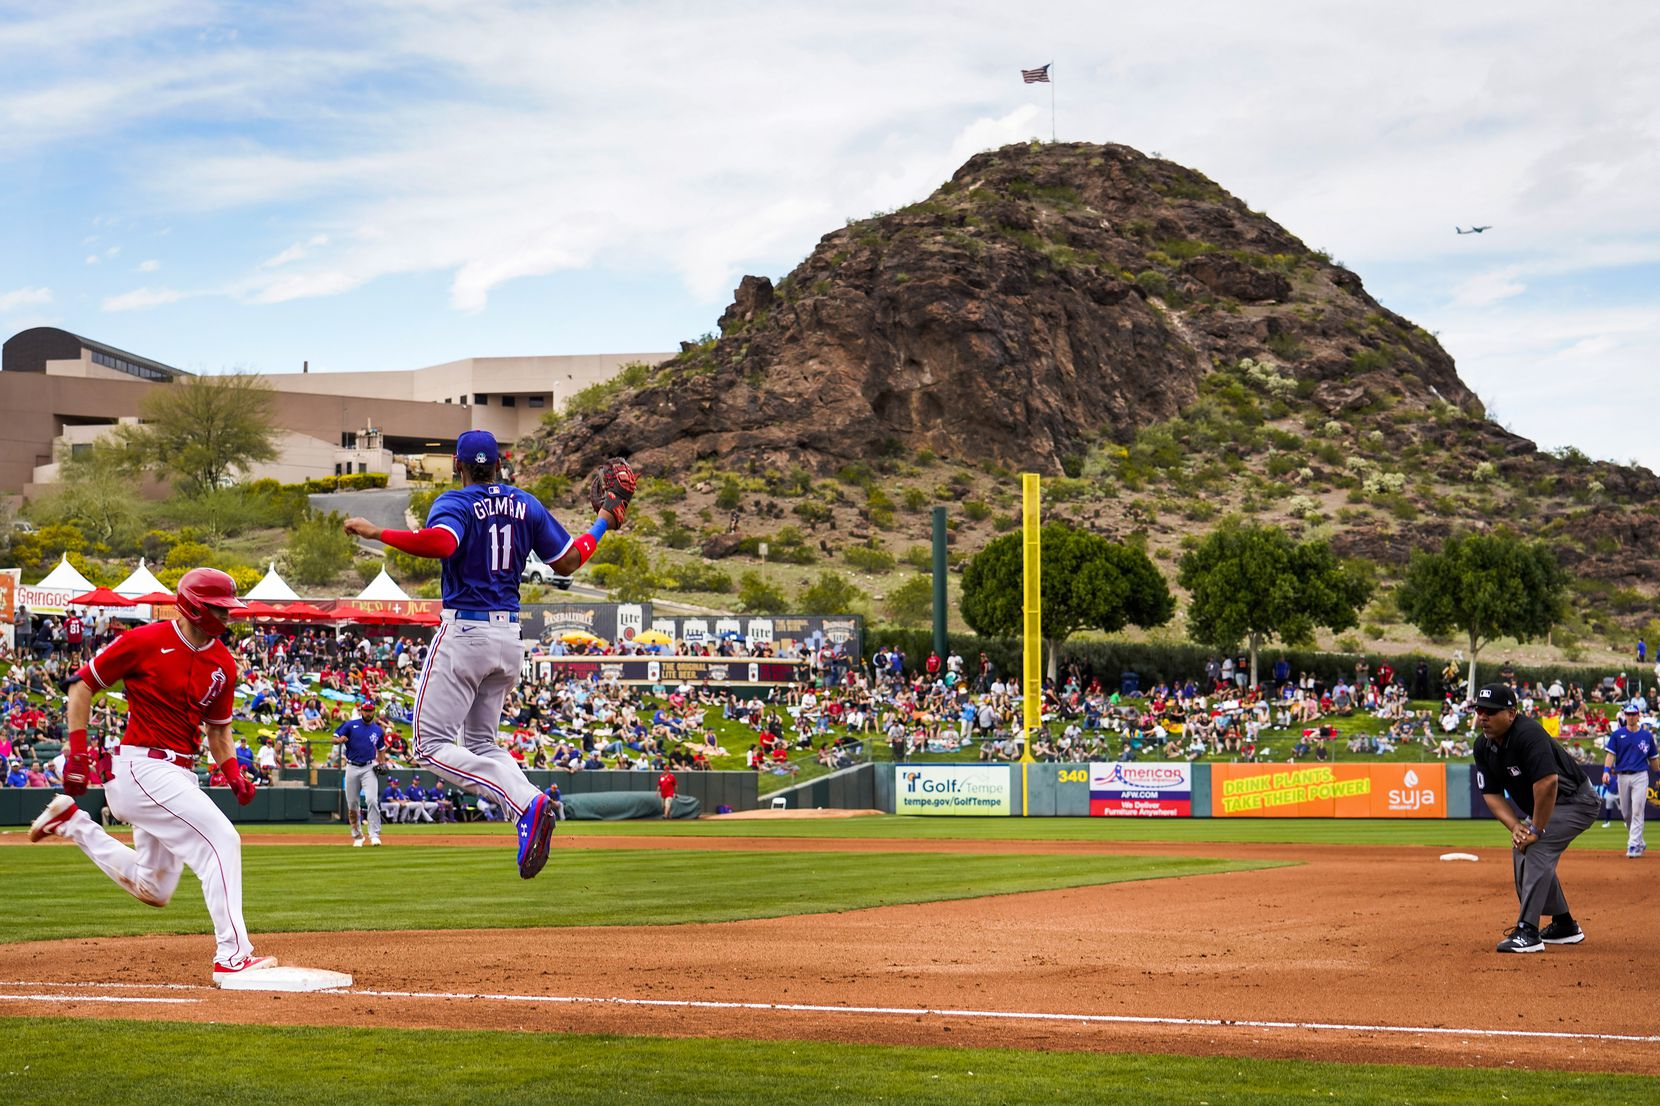 Los Angeles Angels catcher Anthony Bemboom is safe at first on a bunt single as Texas Rangers first baseman Ronald Guzman leaps for the throw from pitcher Joe Palumbo during the fourth inning  of a spring training game at Tempe Diablo Stadium on Friday, Feb. 28, 2020, in Tempe, Ariz.